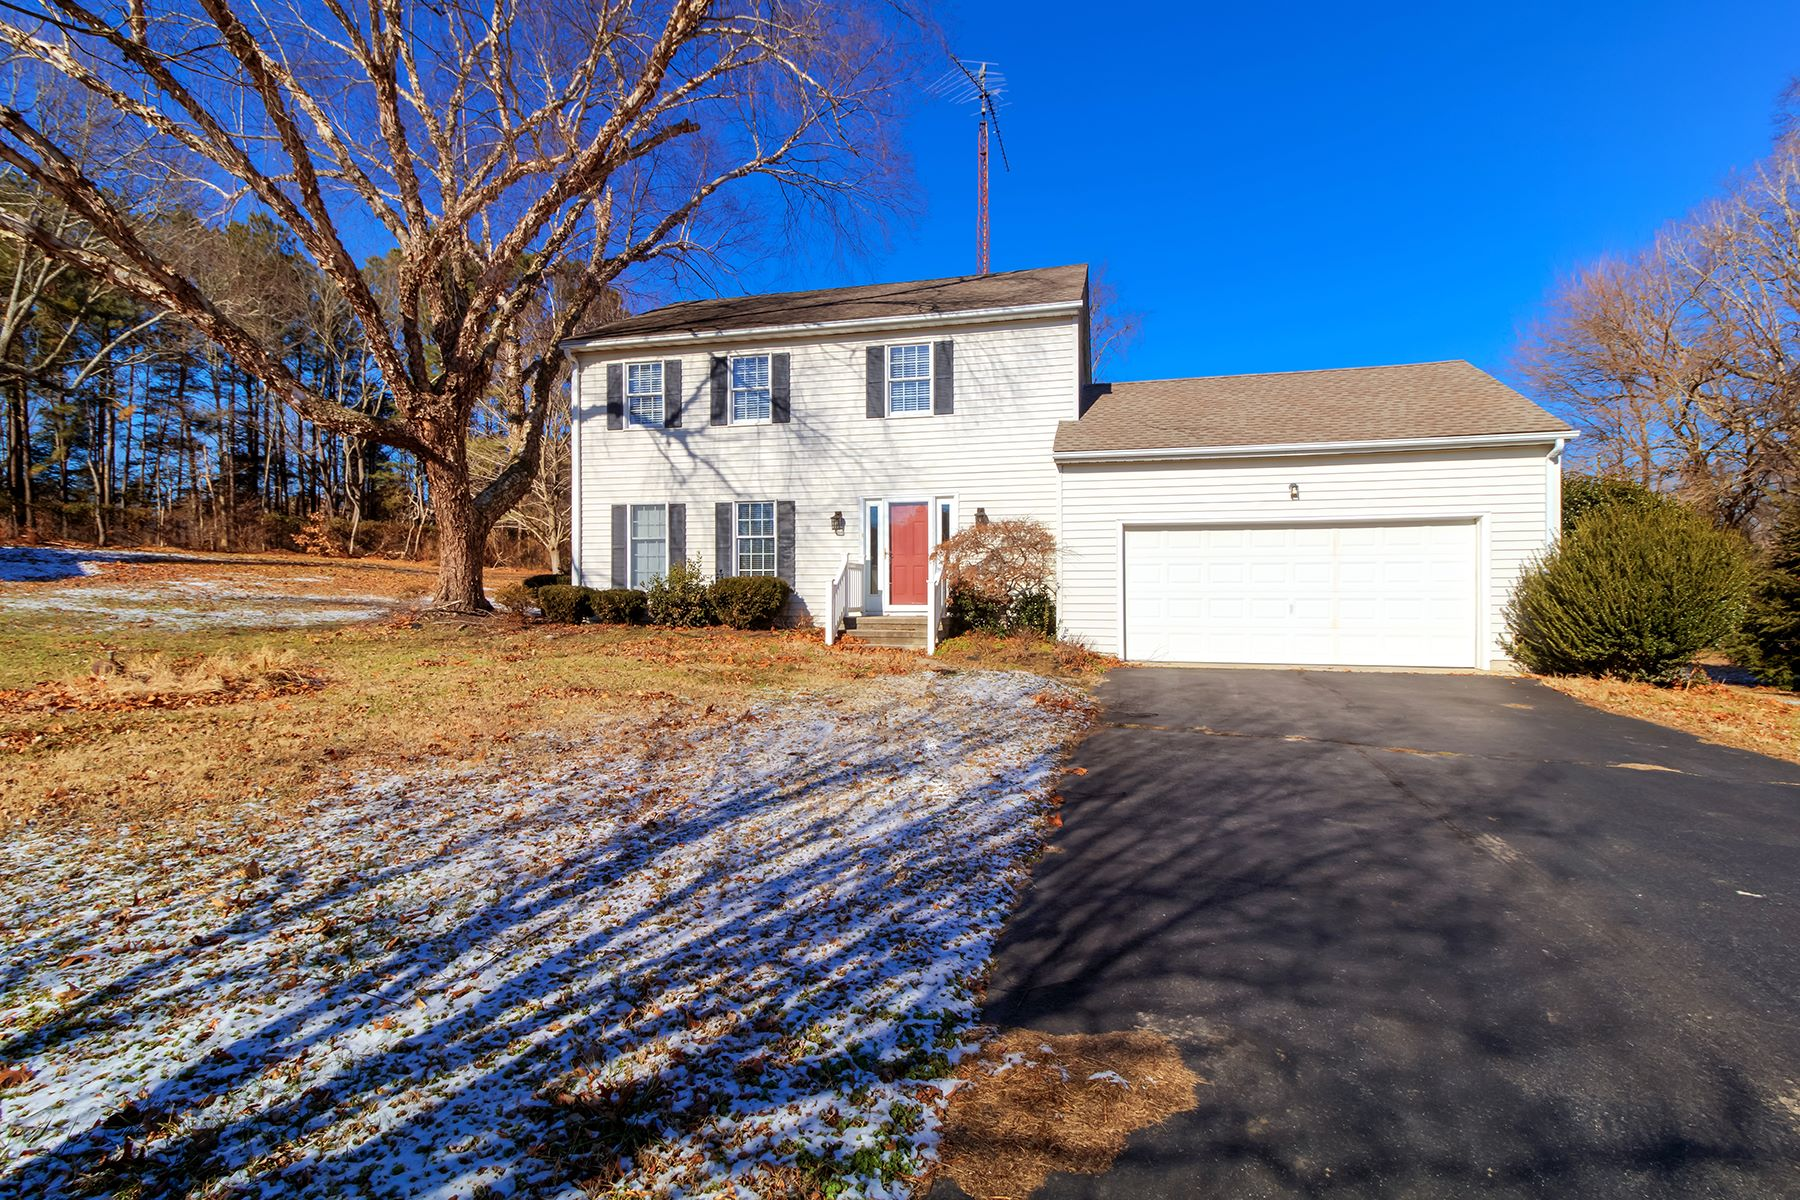 Single Family Home for Sale at 106 Russell Dr , Milford, DE 19963 106 Russell Dr Milford, Delaware 19963 United States